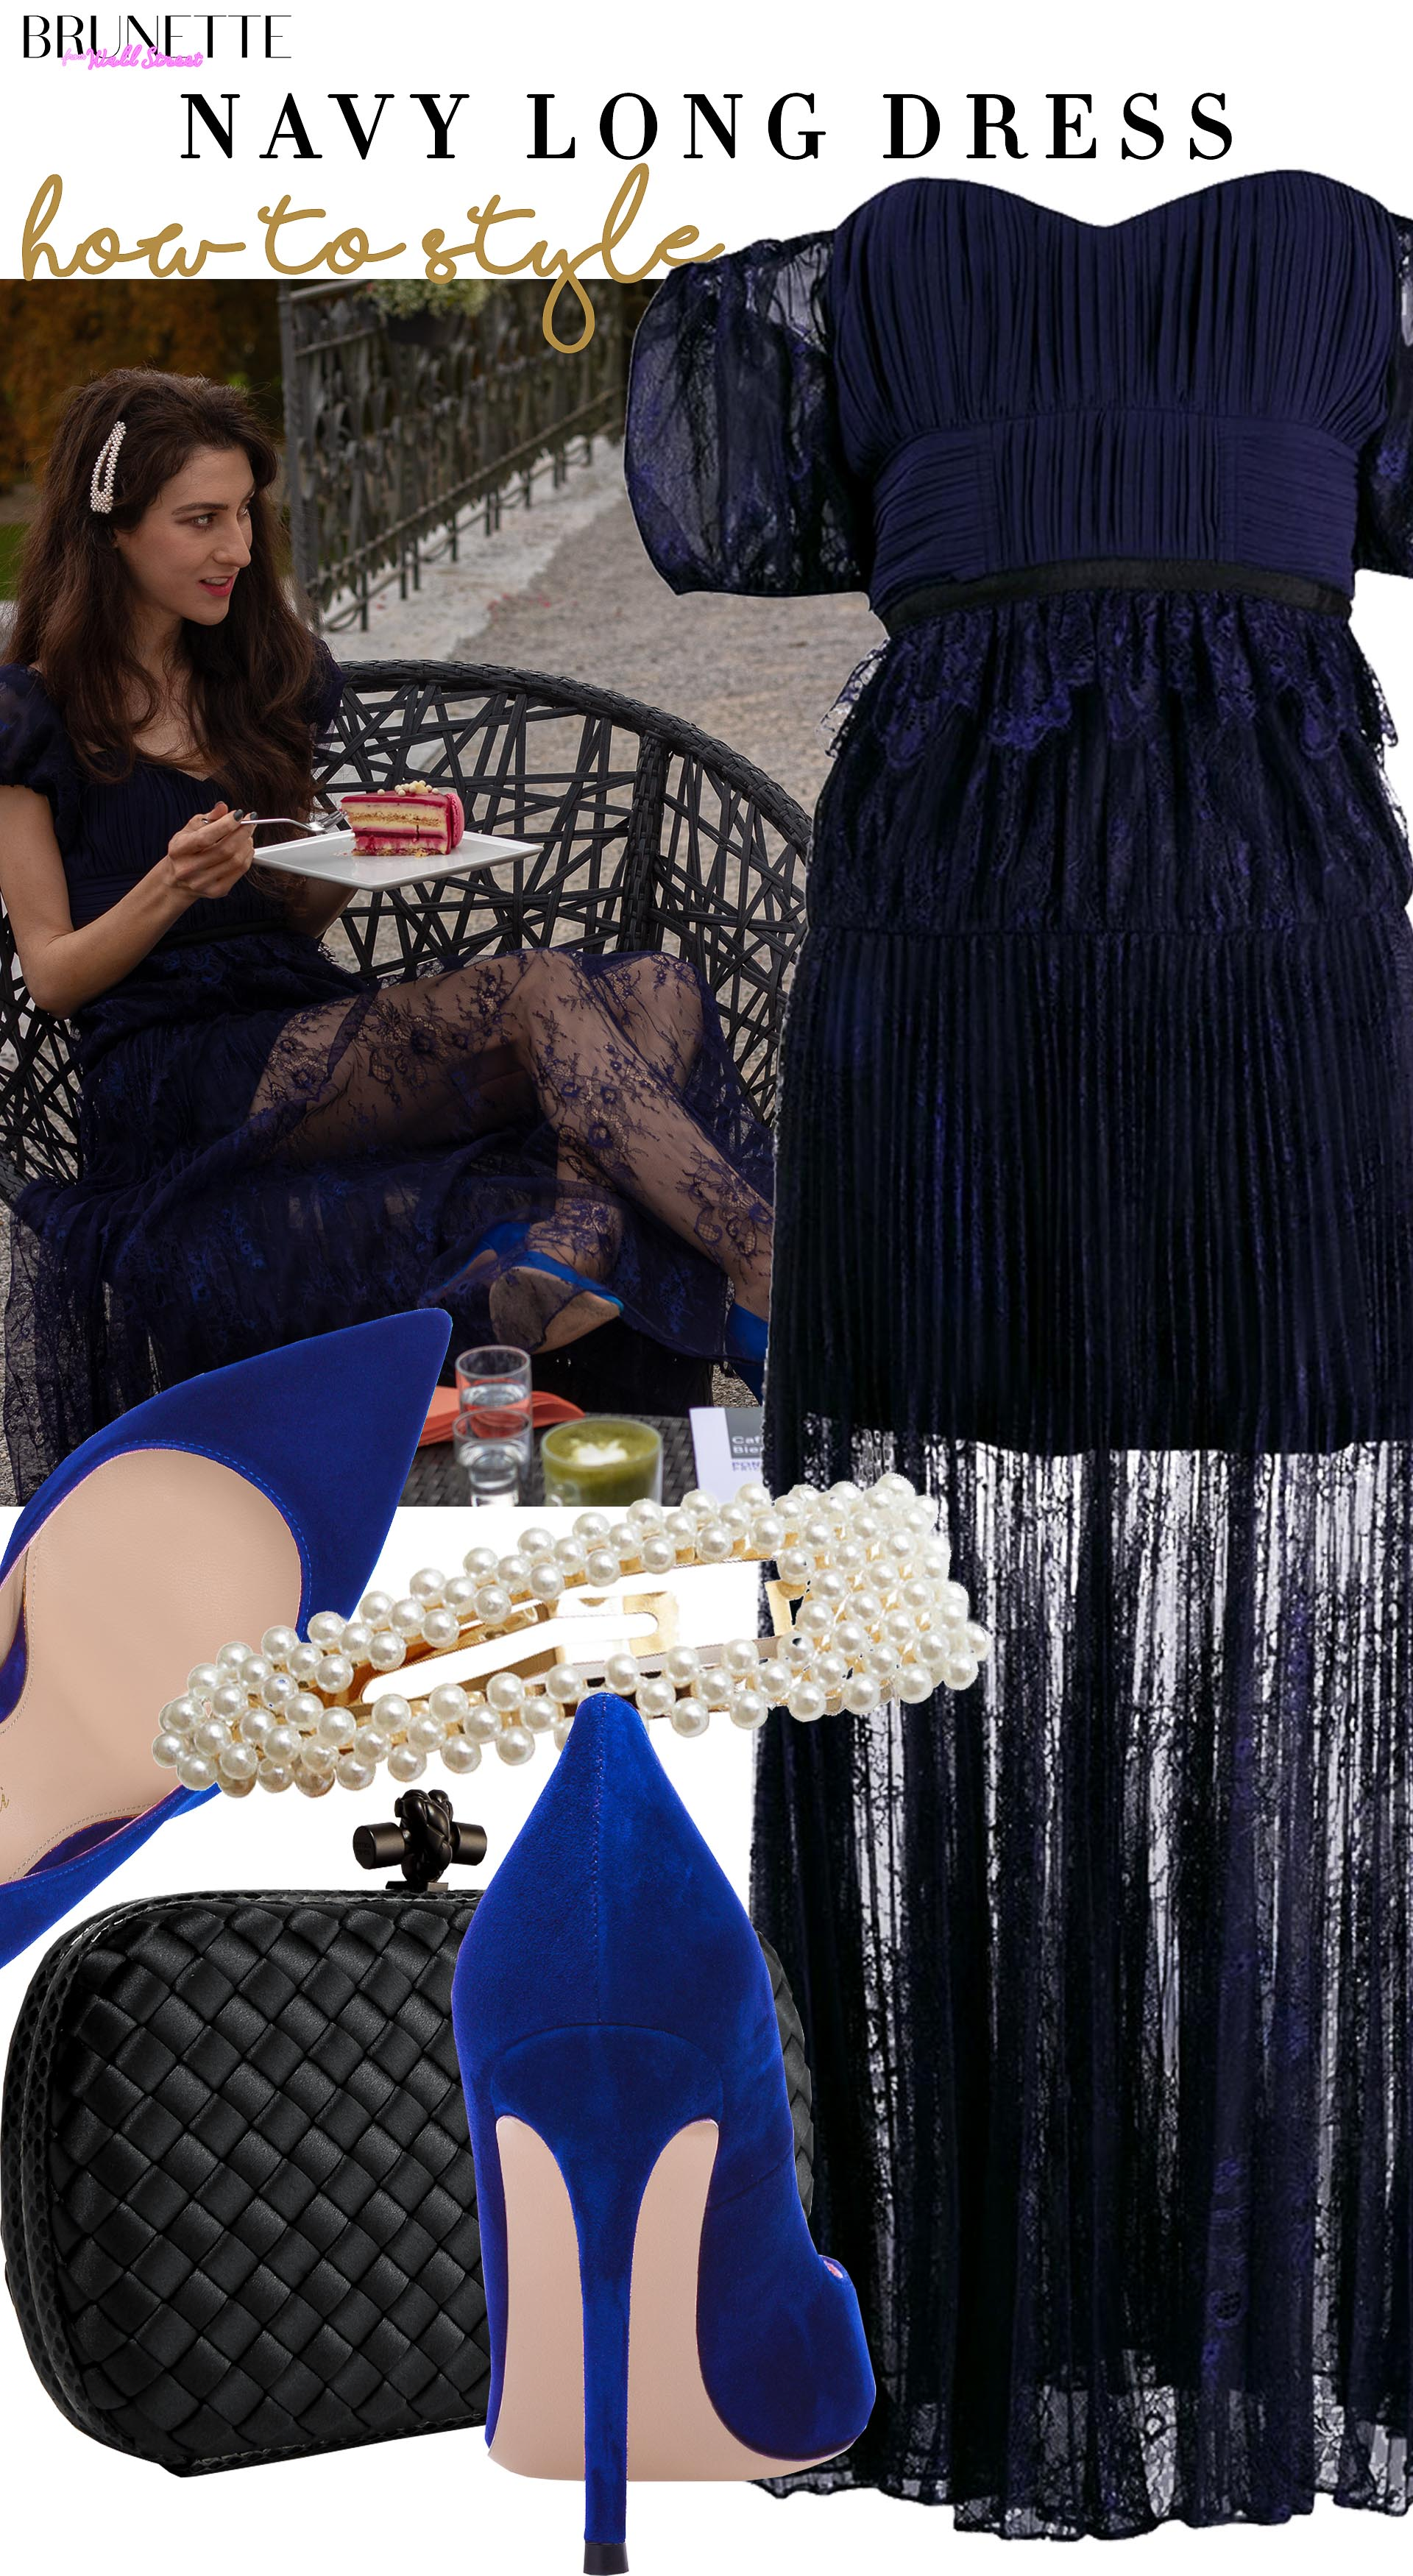 Brunette from Wall Street how to style self-portait navy lace gown dress pearl hairclip bottega veneta clouch gianvito rossi pumps for birthday party